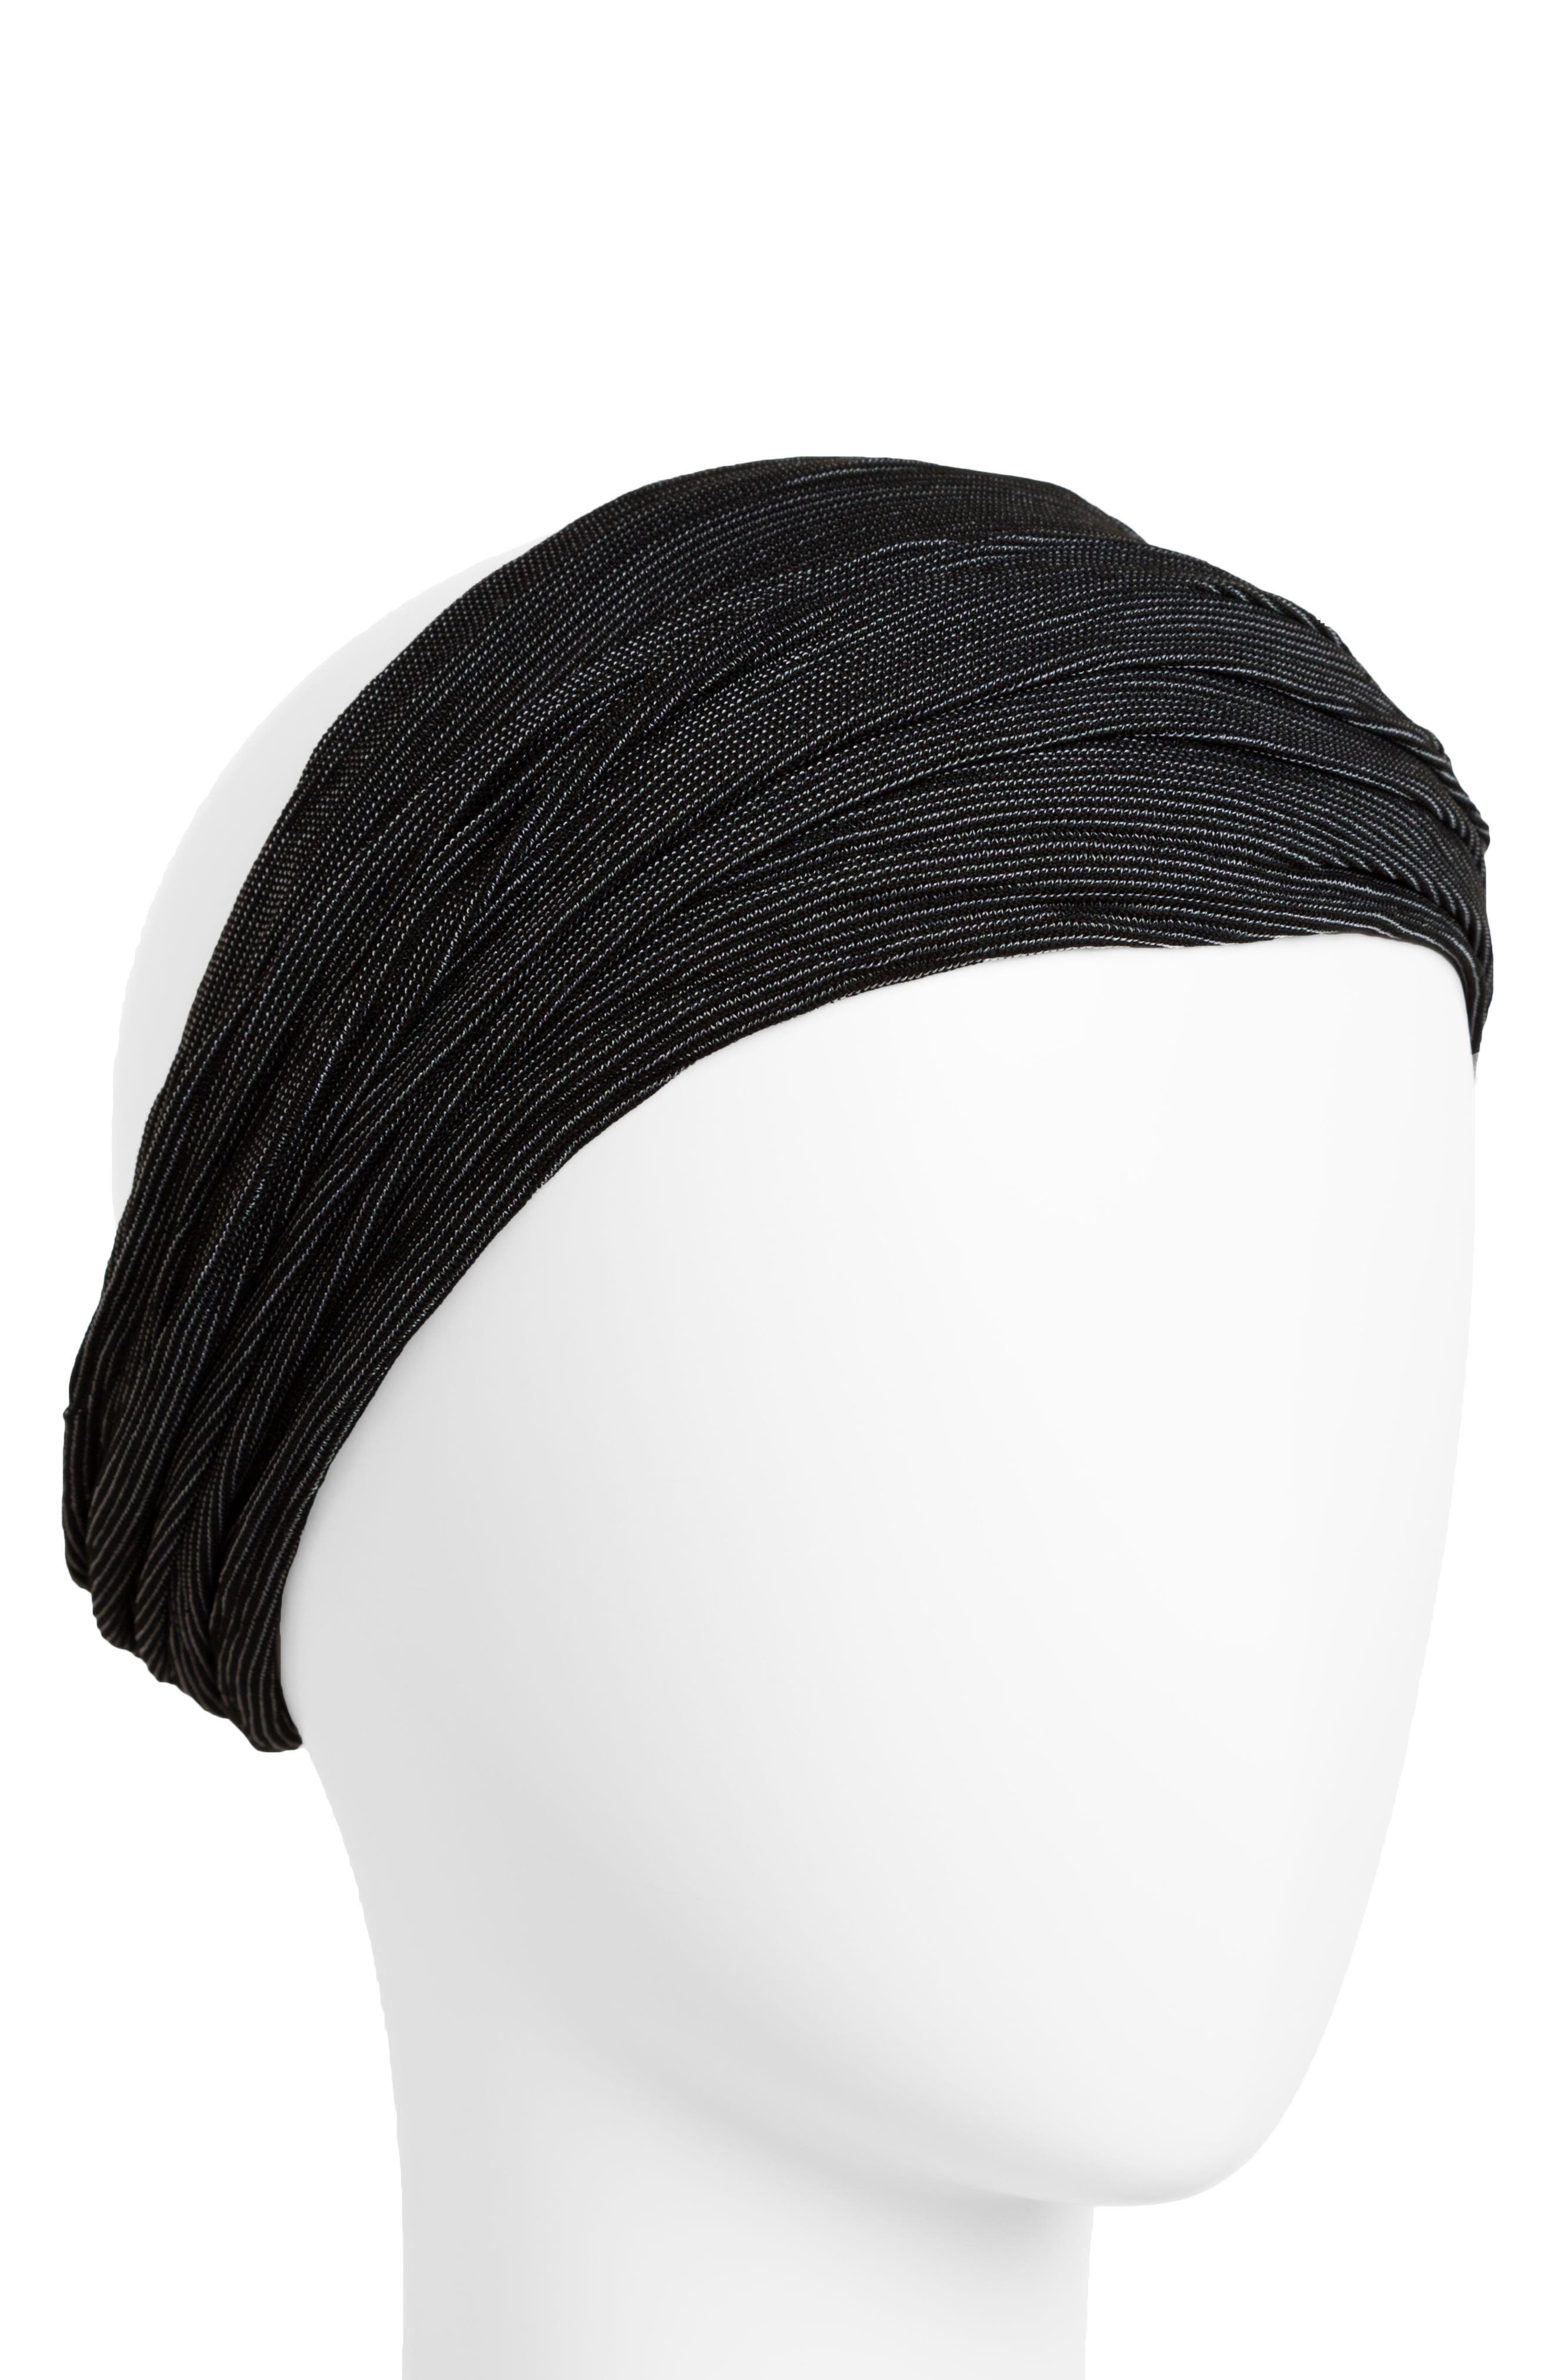 L. Erickson Space Dye Relaxed Turban Head Wrap